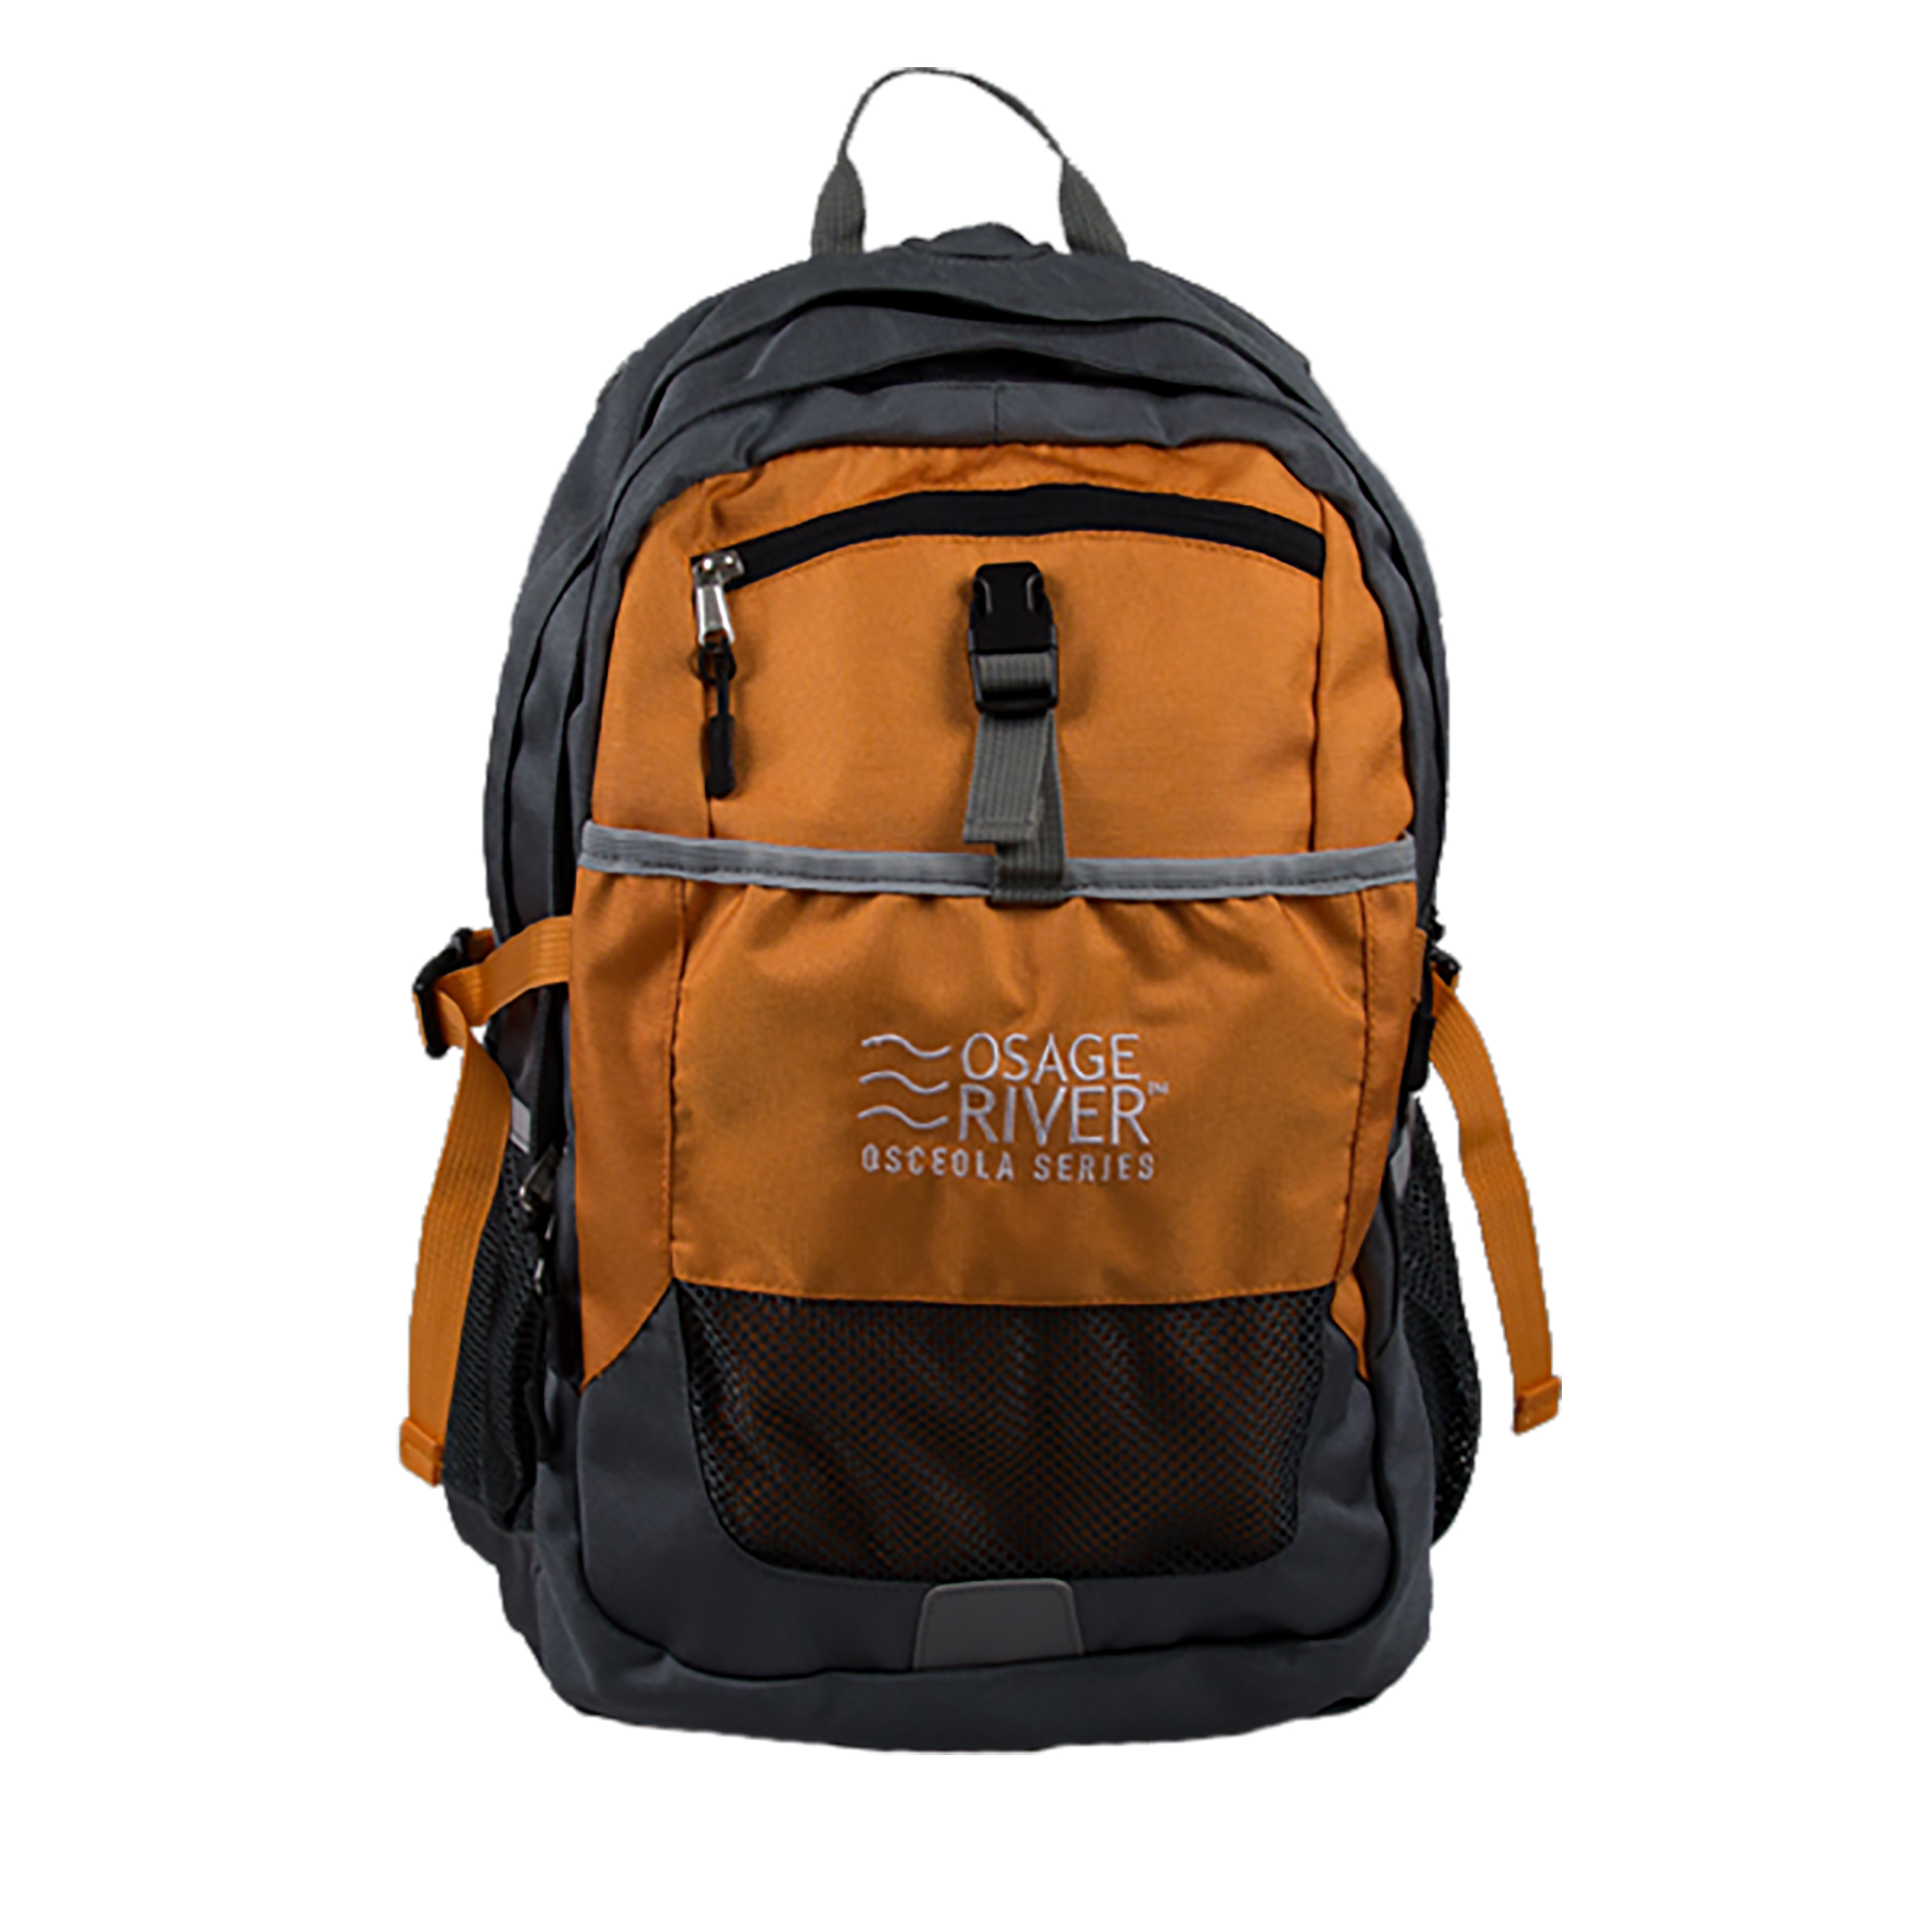 Backpacks and Gearbags